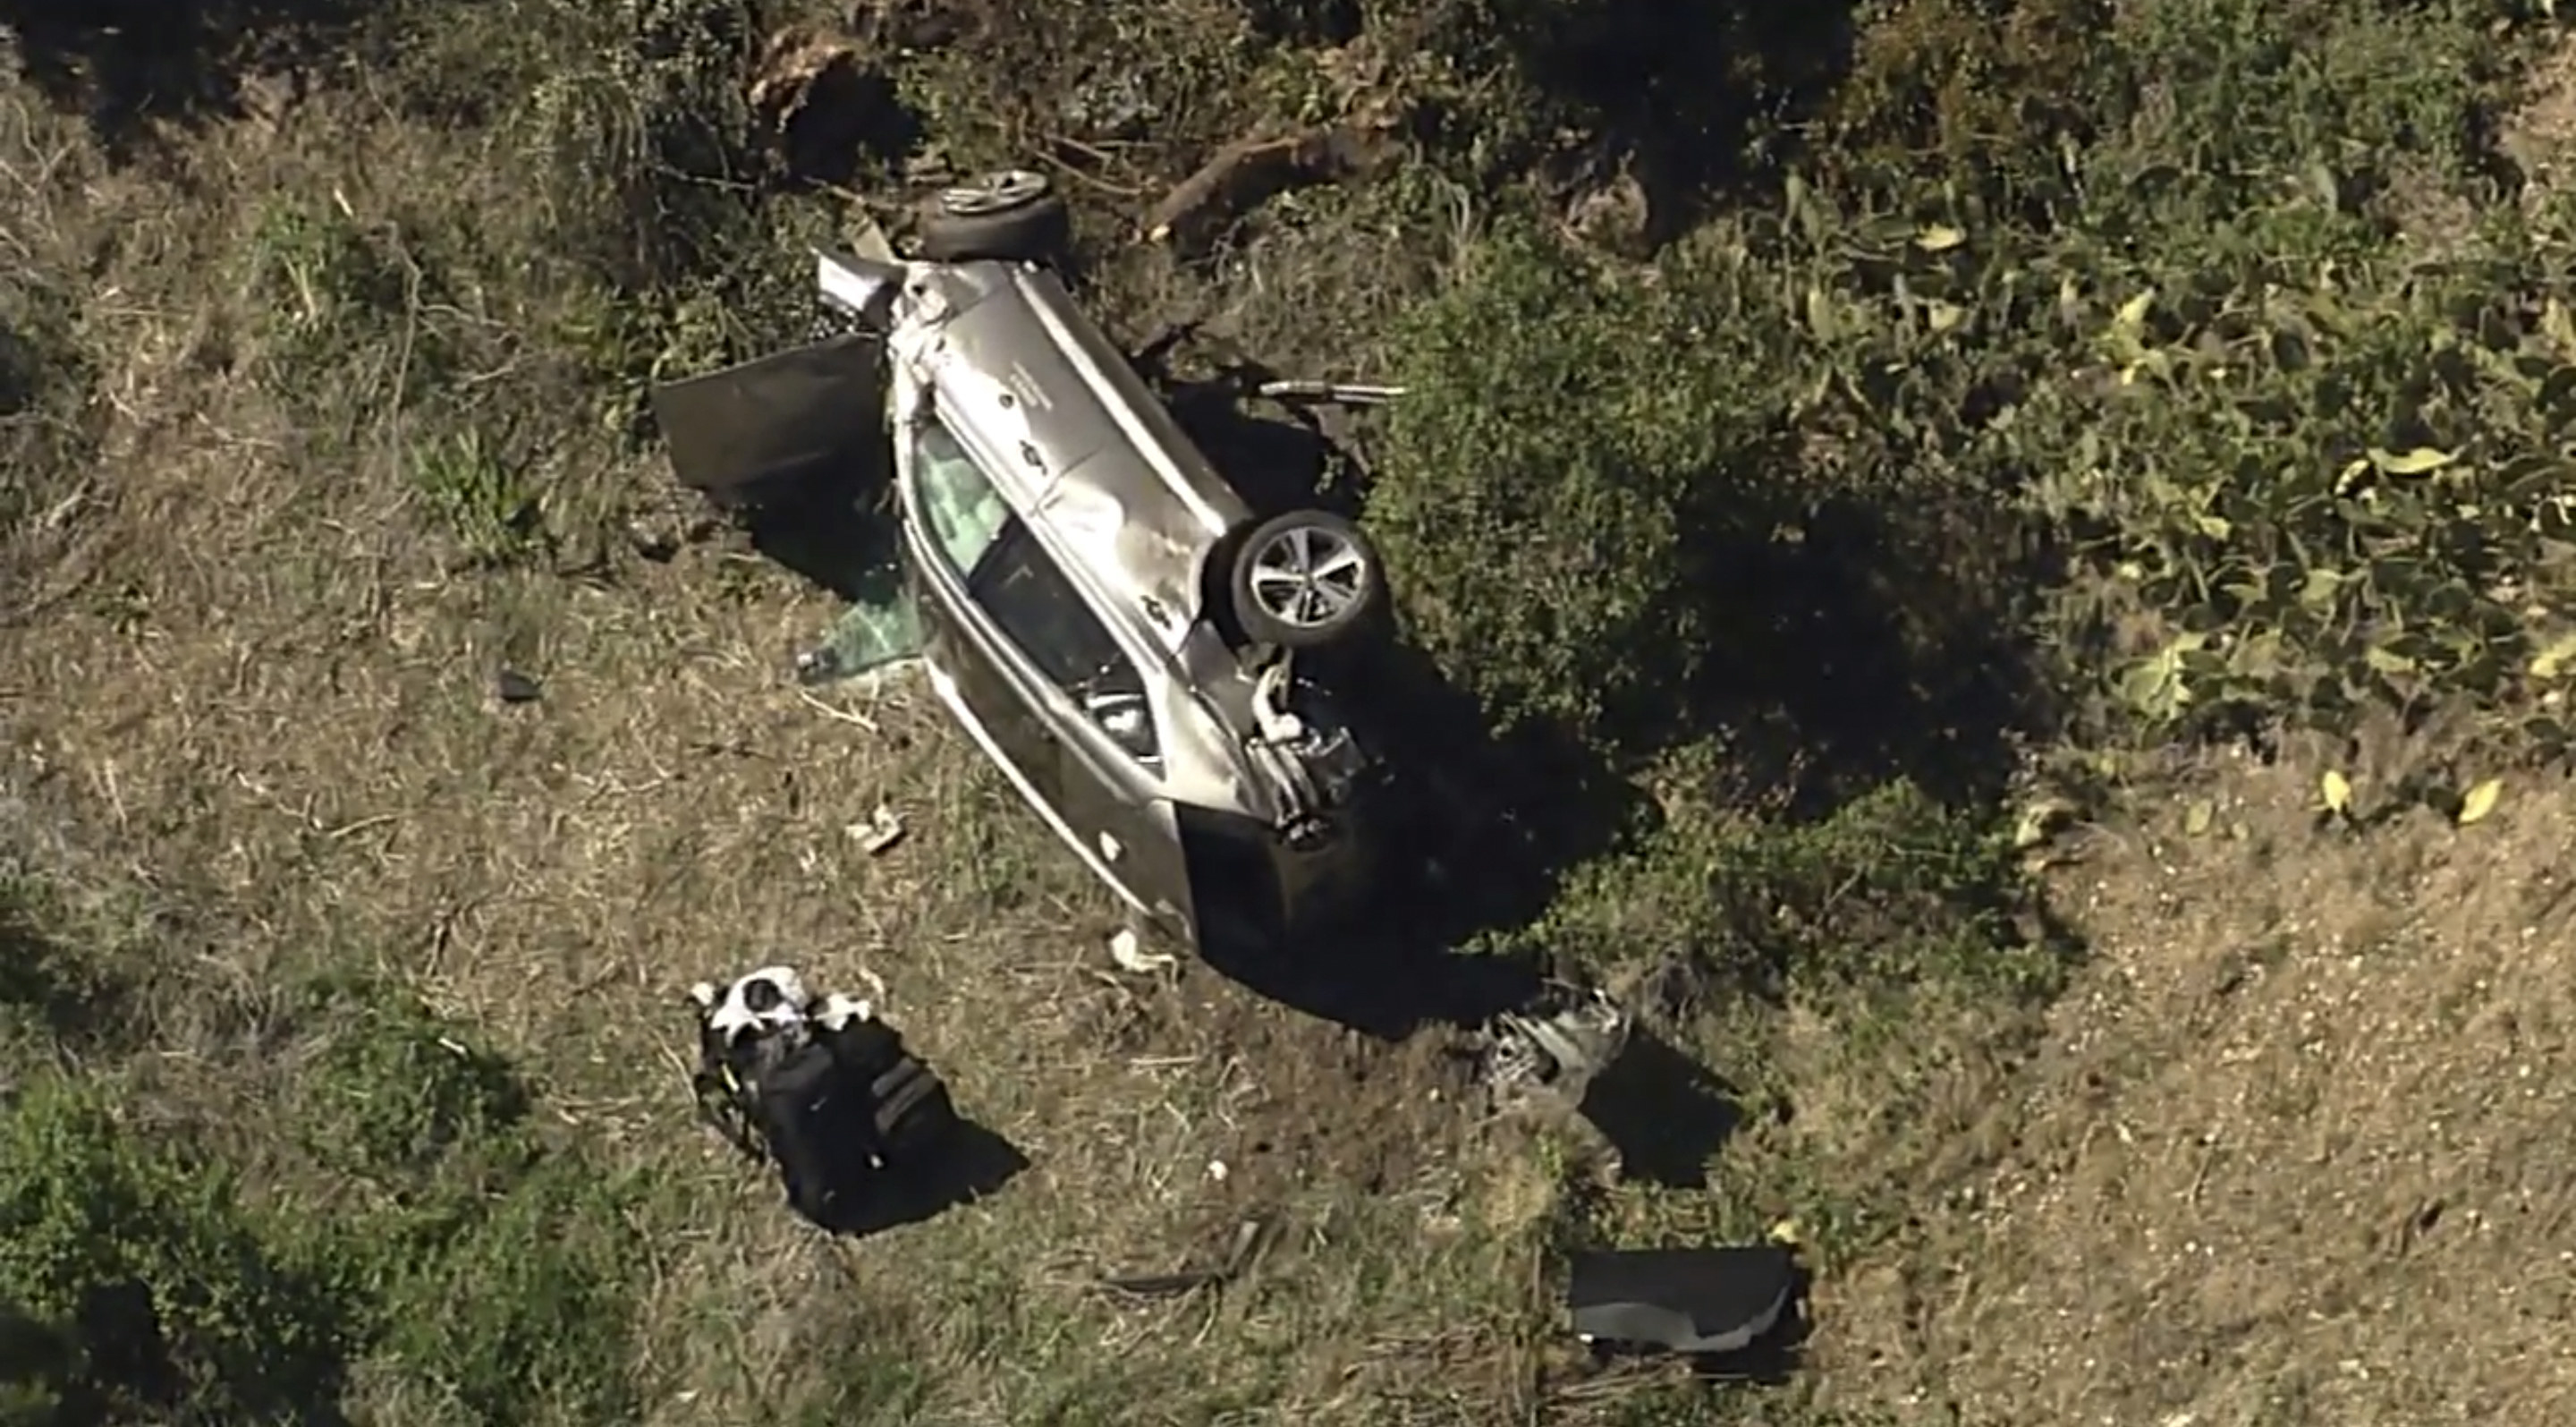 A damaged car rests on its side at the bottom of a hill in this aerial view